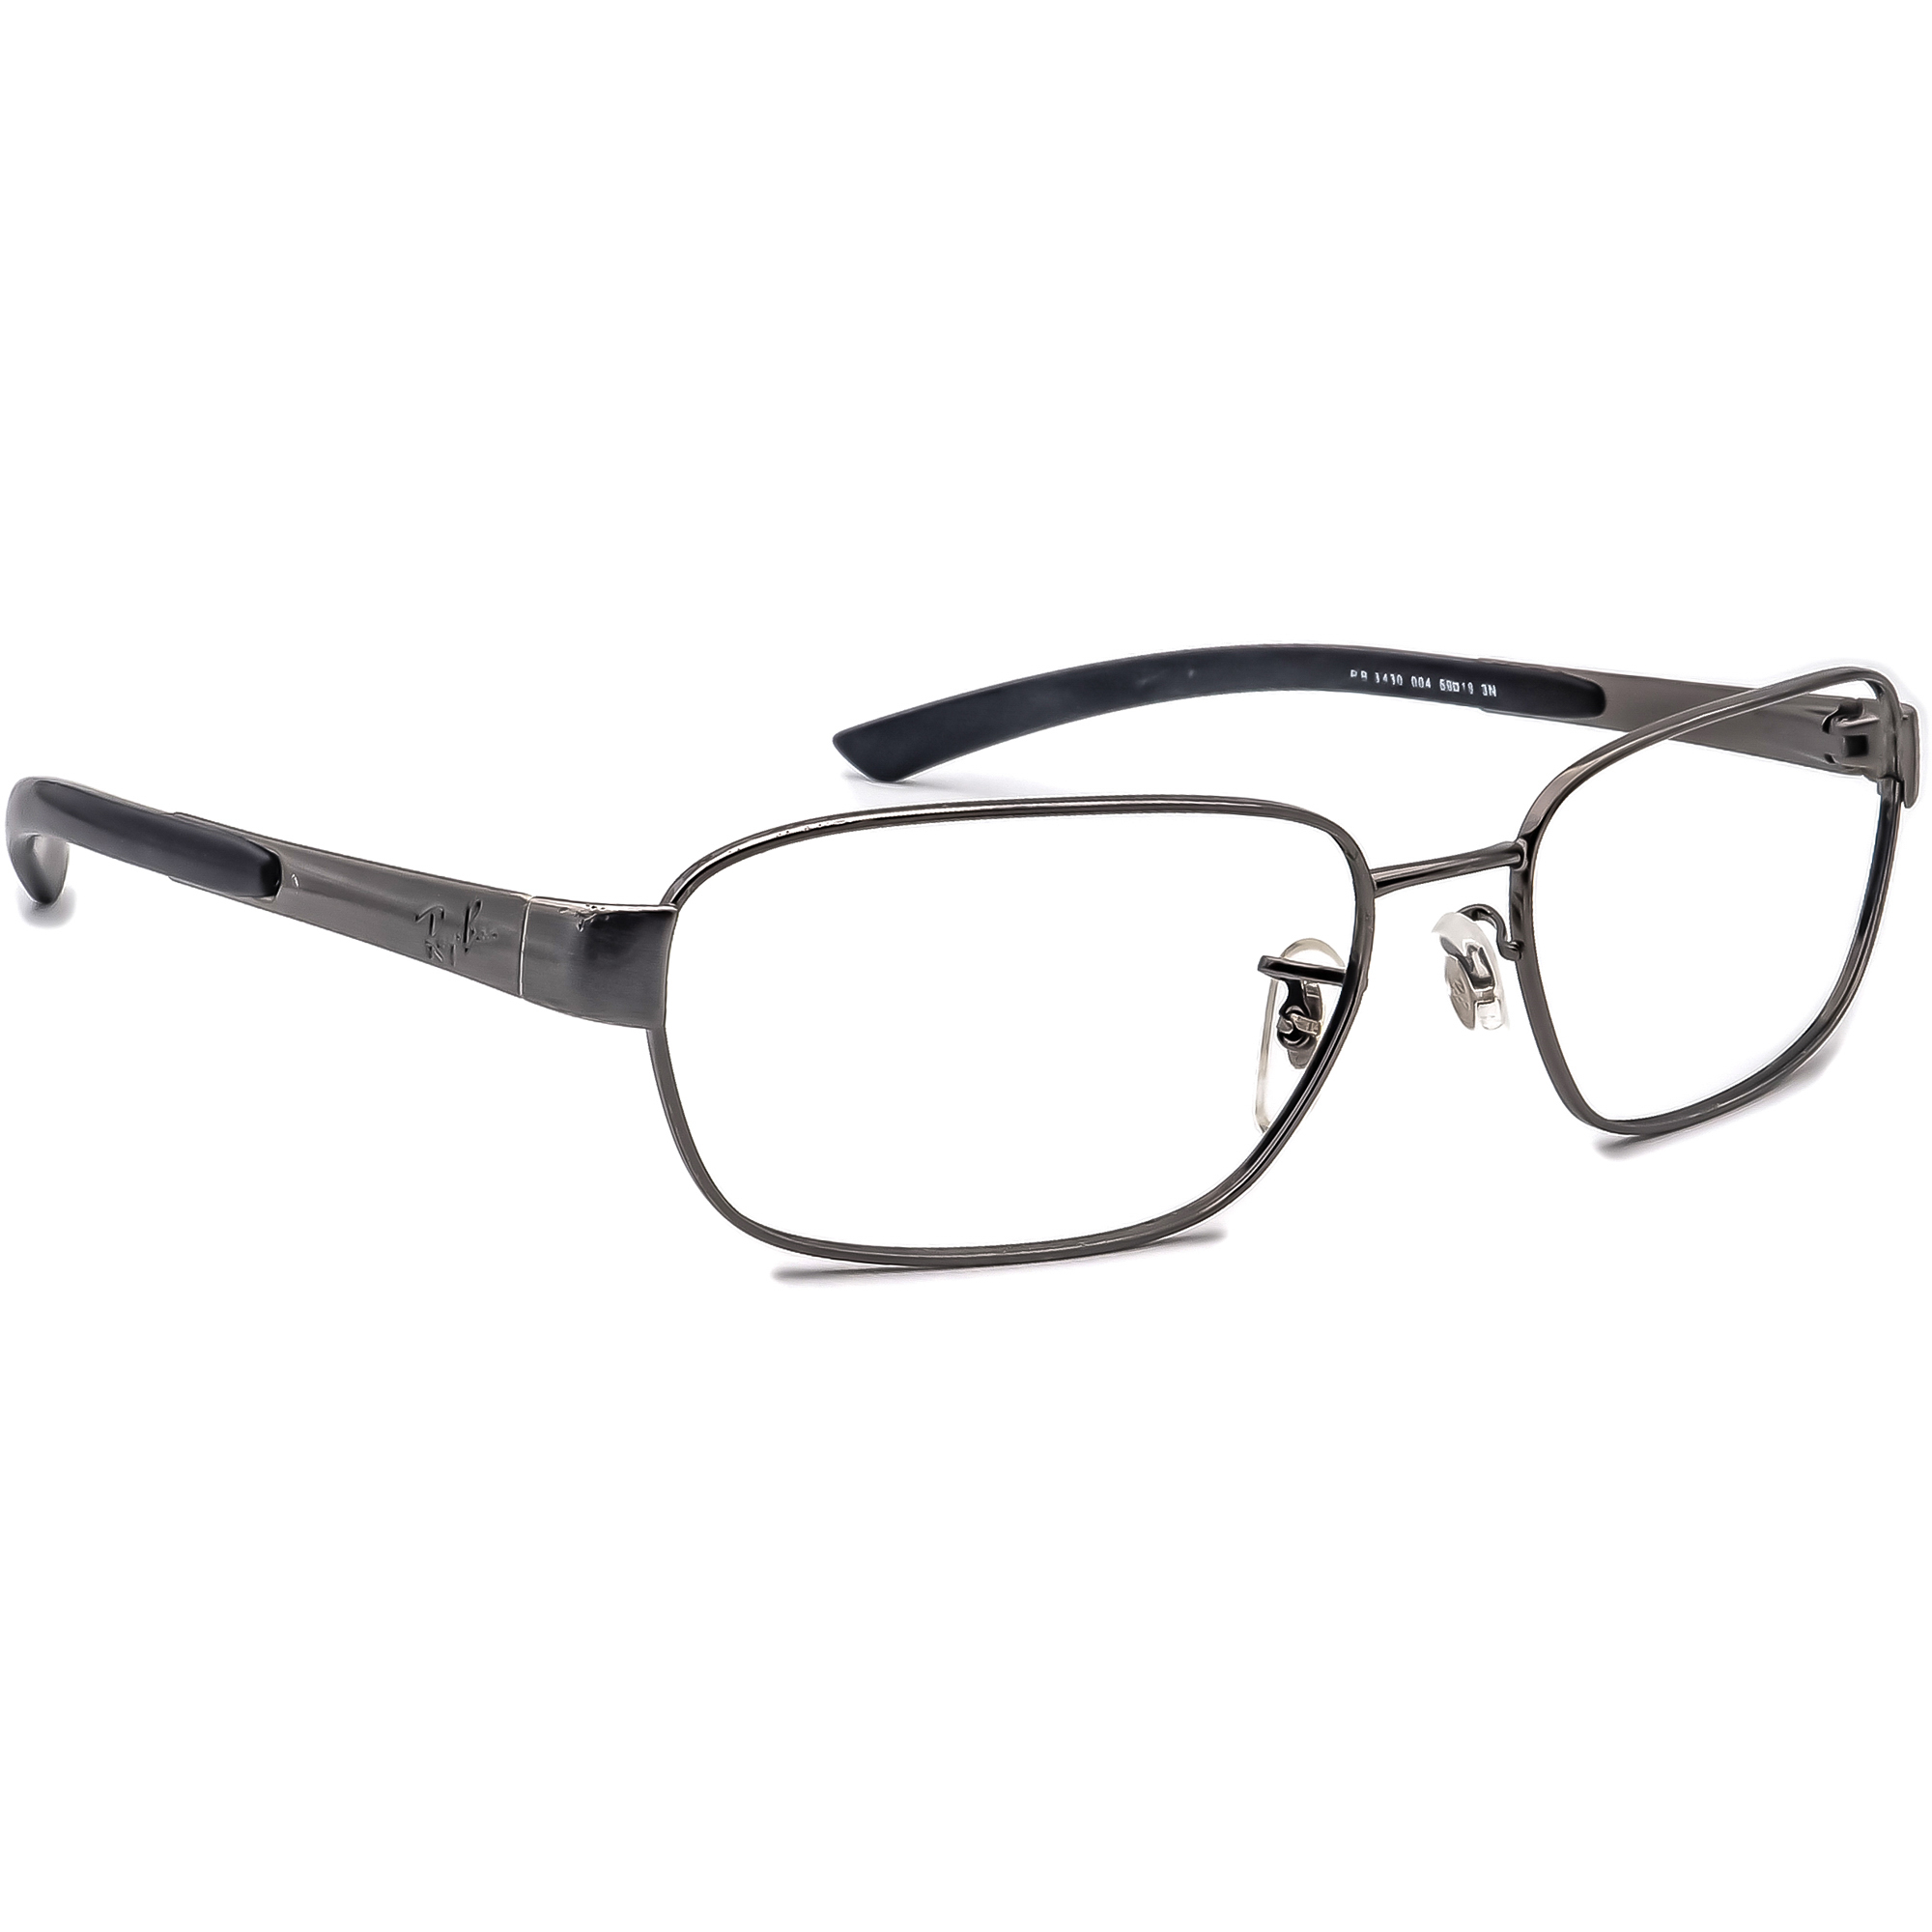 Ray-Ban RB 3430 004 Sunglasses Frame Only